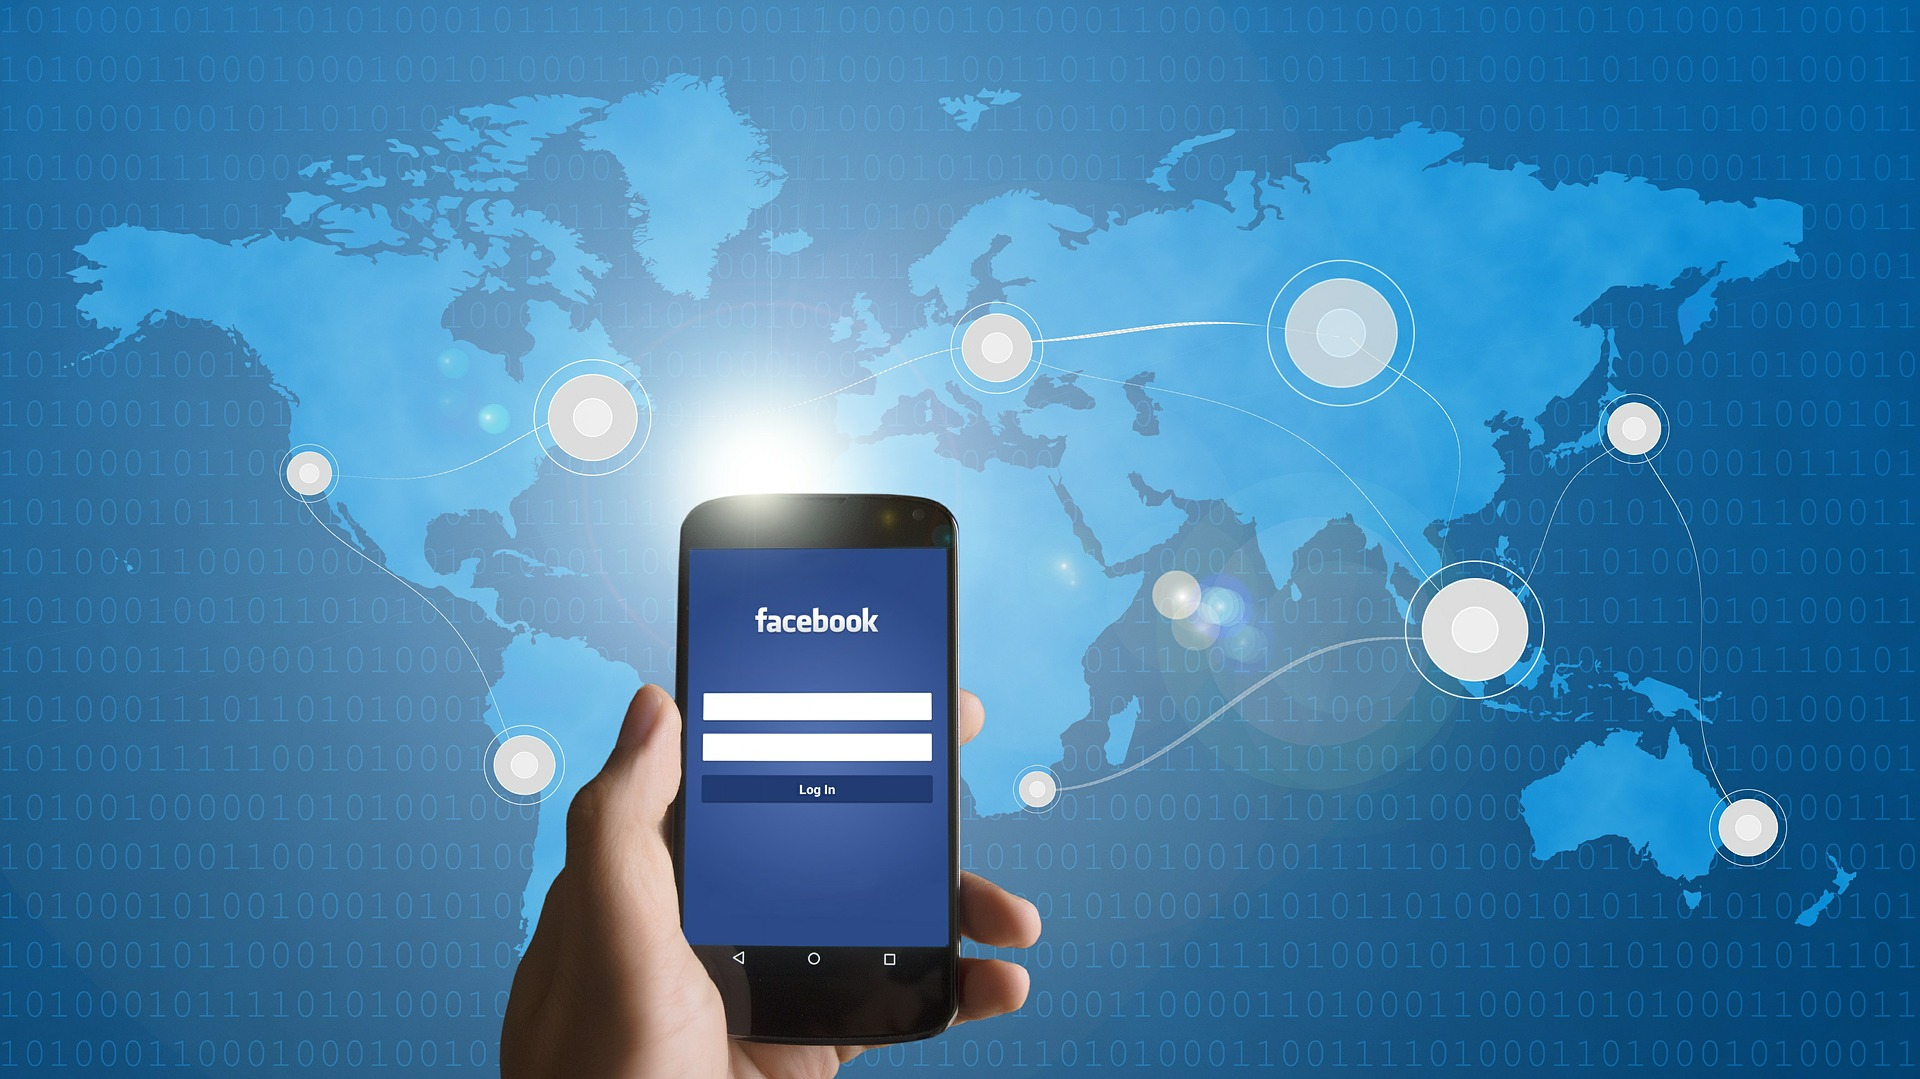 Facebook and the world